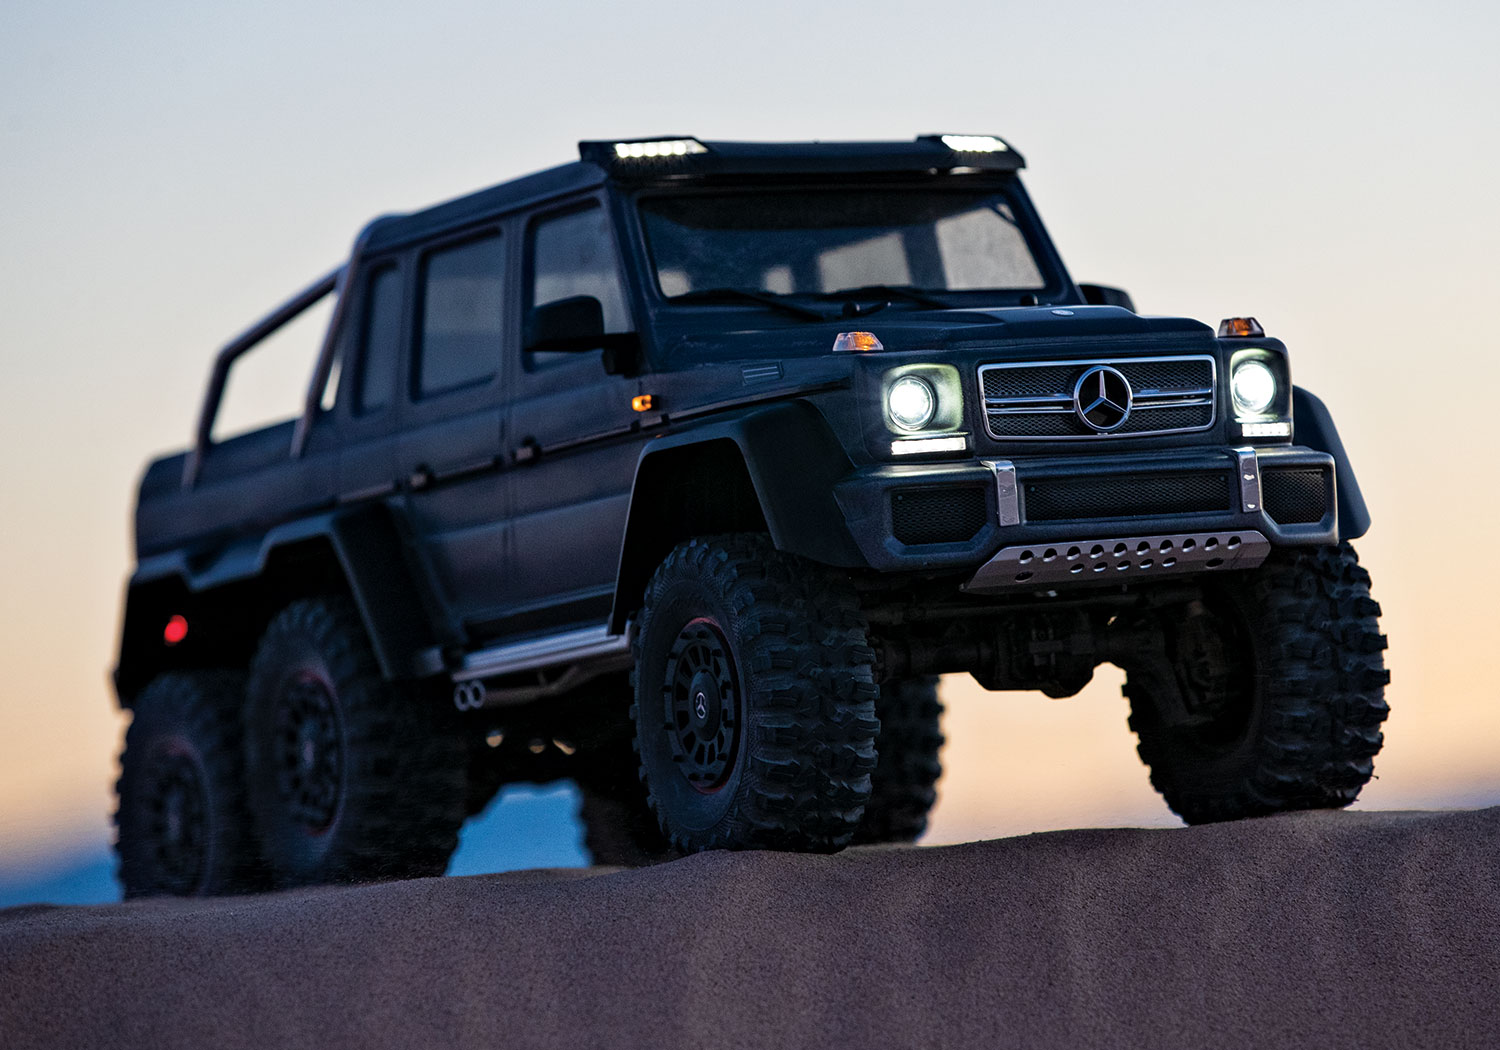 TRX-4 with Mercedes-Benz G 63 AMG 6x6 LED Lights